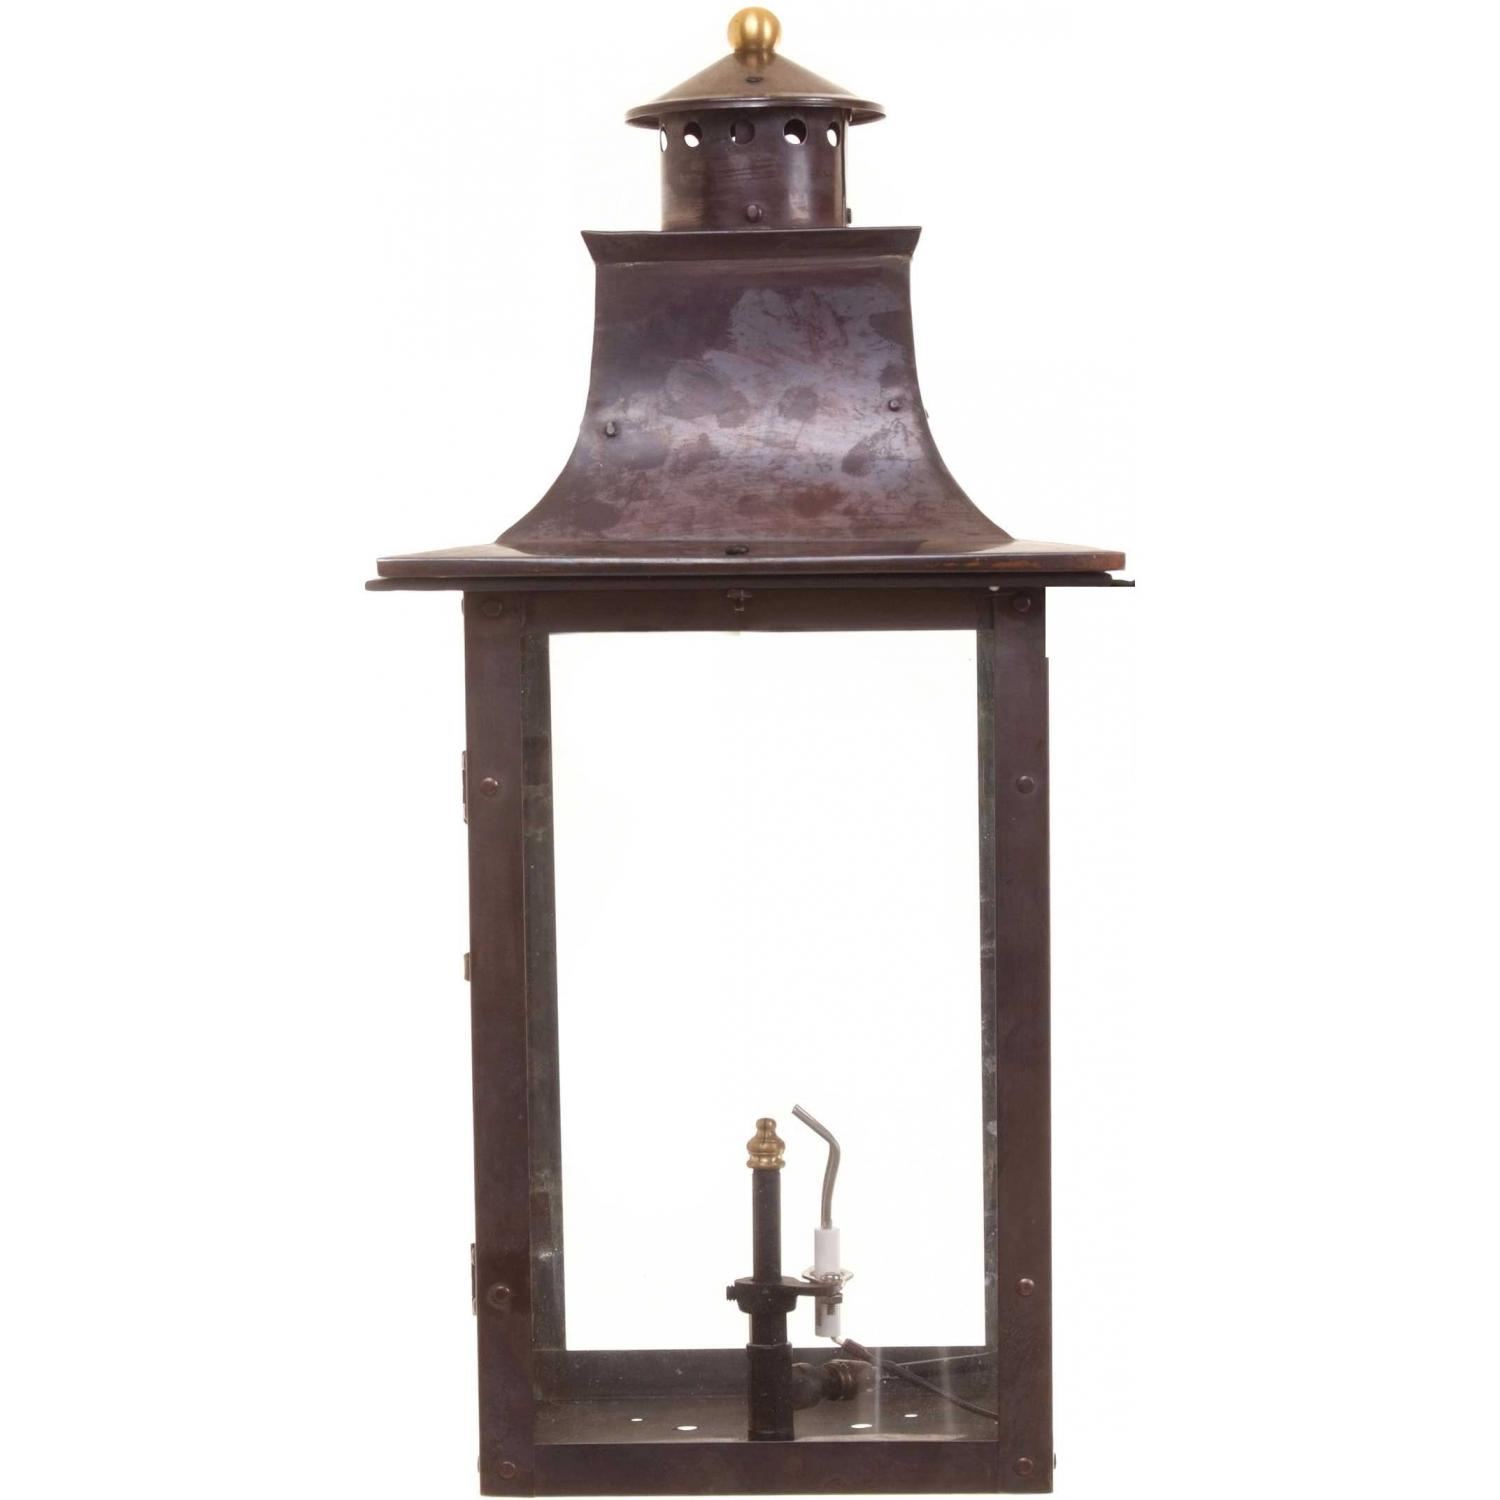 Regency GL21 Faye Rue Small Natural Gas Light With Open Flame Burner And Electronic Ignition On Wall Mount